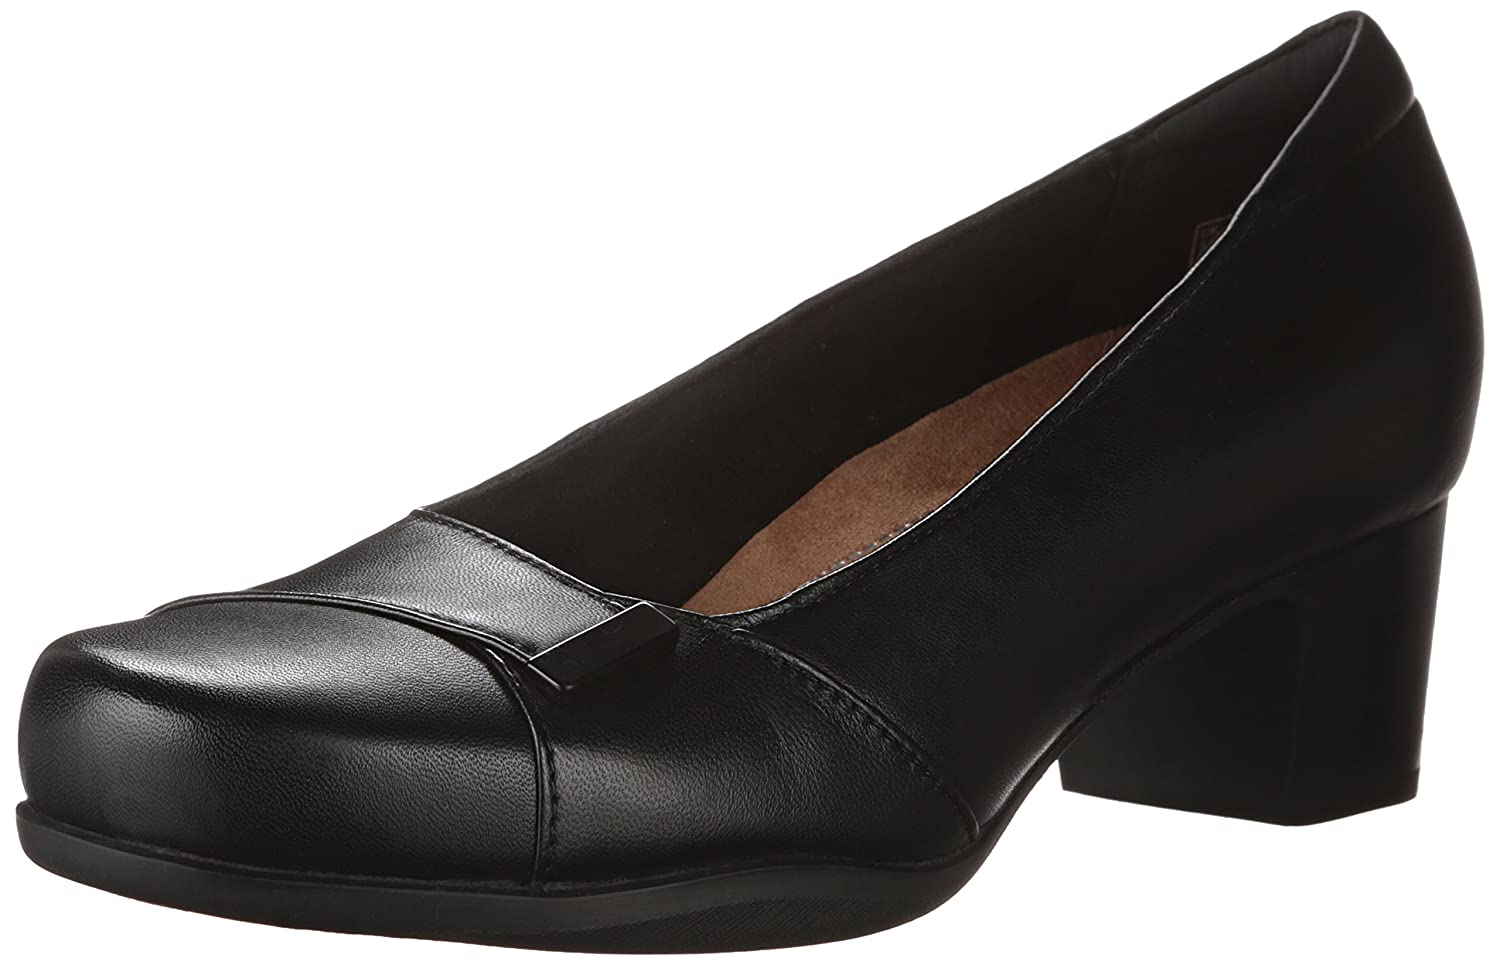 CLARKS Women's Rosalyn Belle B00T3IQ2M0 10 W US|Black Leather